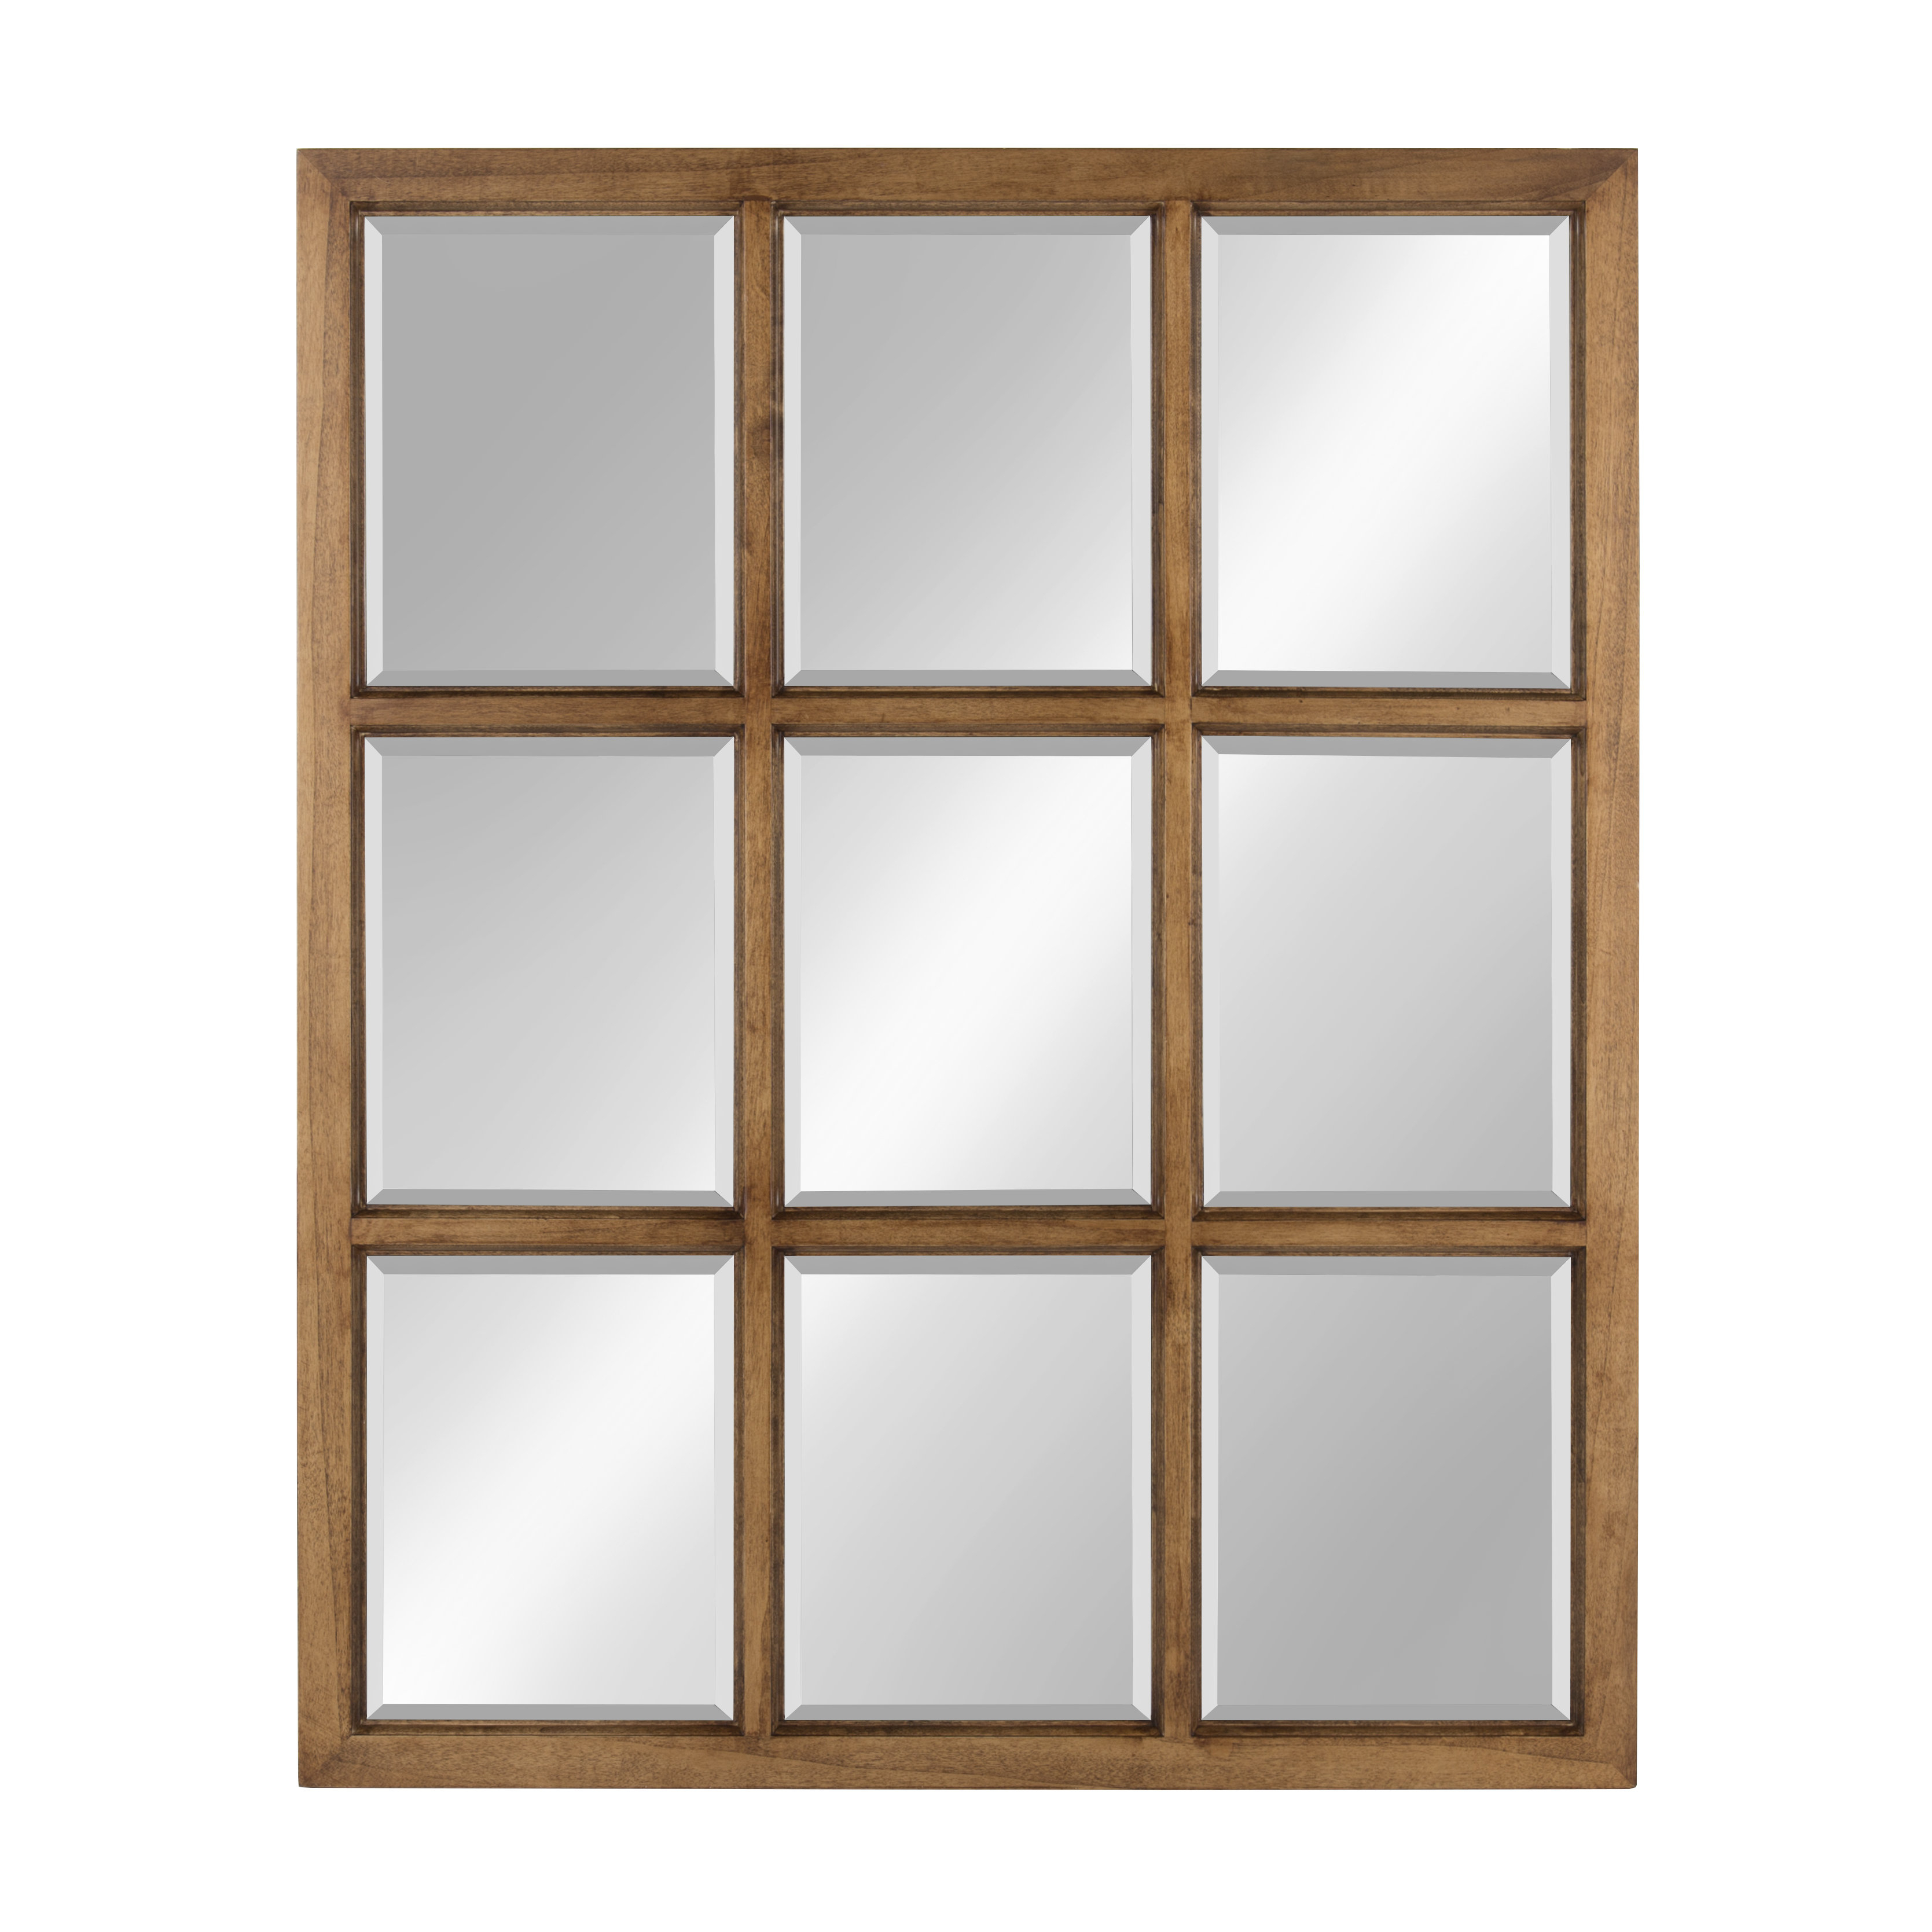 Leavens Cottage/country Beveled Accent Mirror Pertaining To Austin Industrial Accent Mirrors (Image 15 of 30)